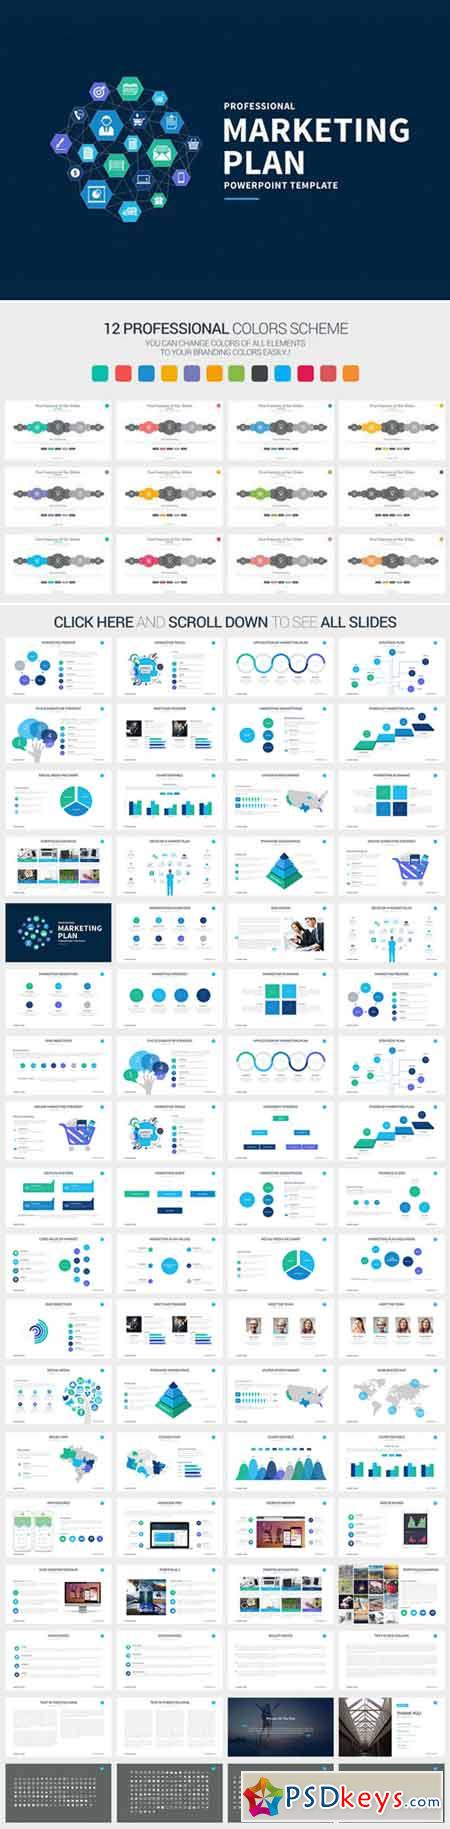 marketing plan powerpoint template 411609 » free download, Modern powerpoint